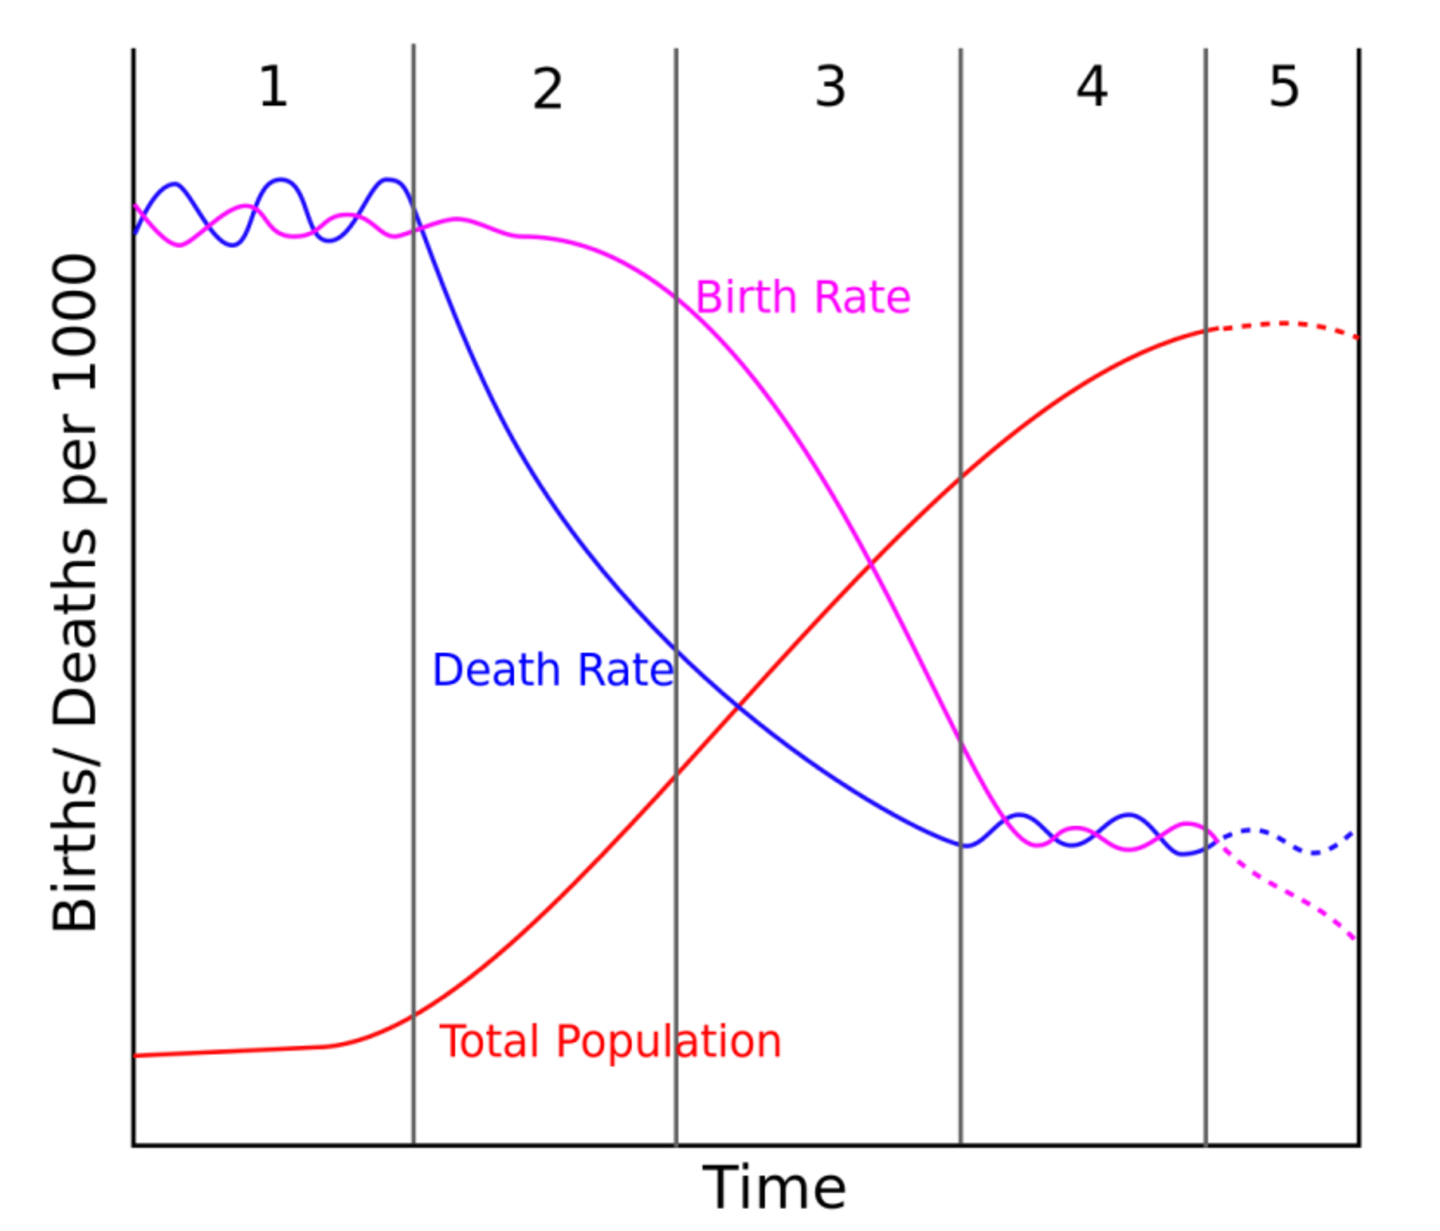 Demography & Social Inequality Graph